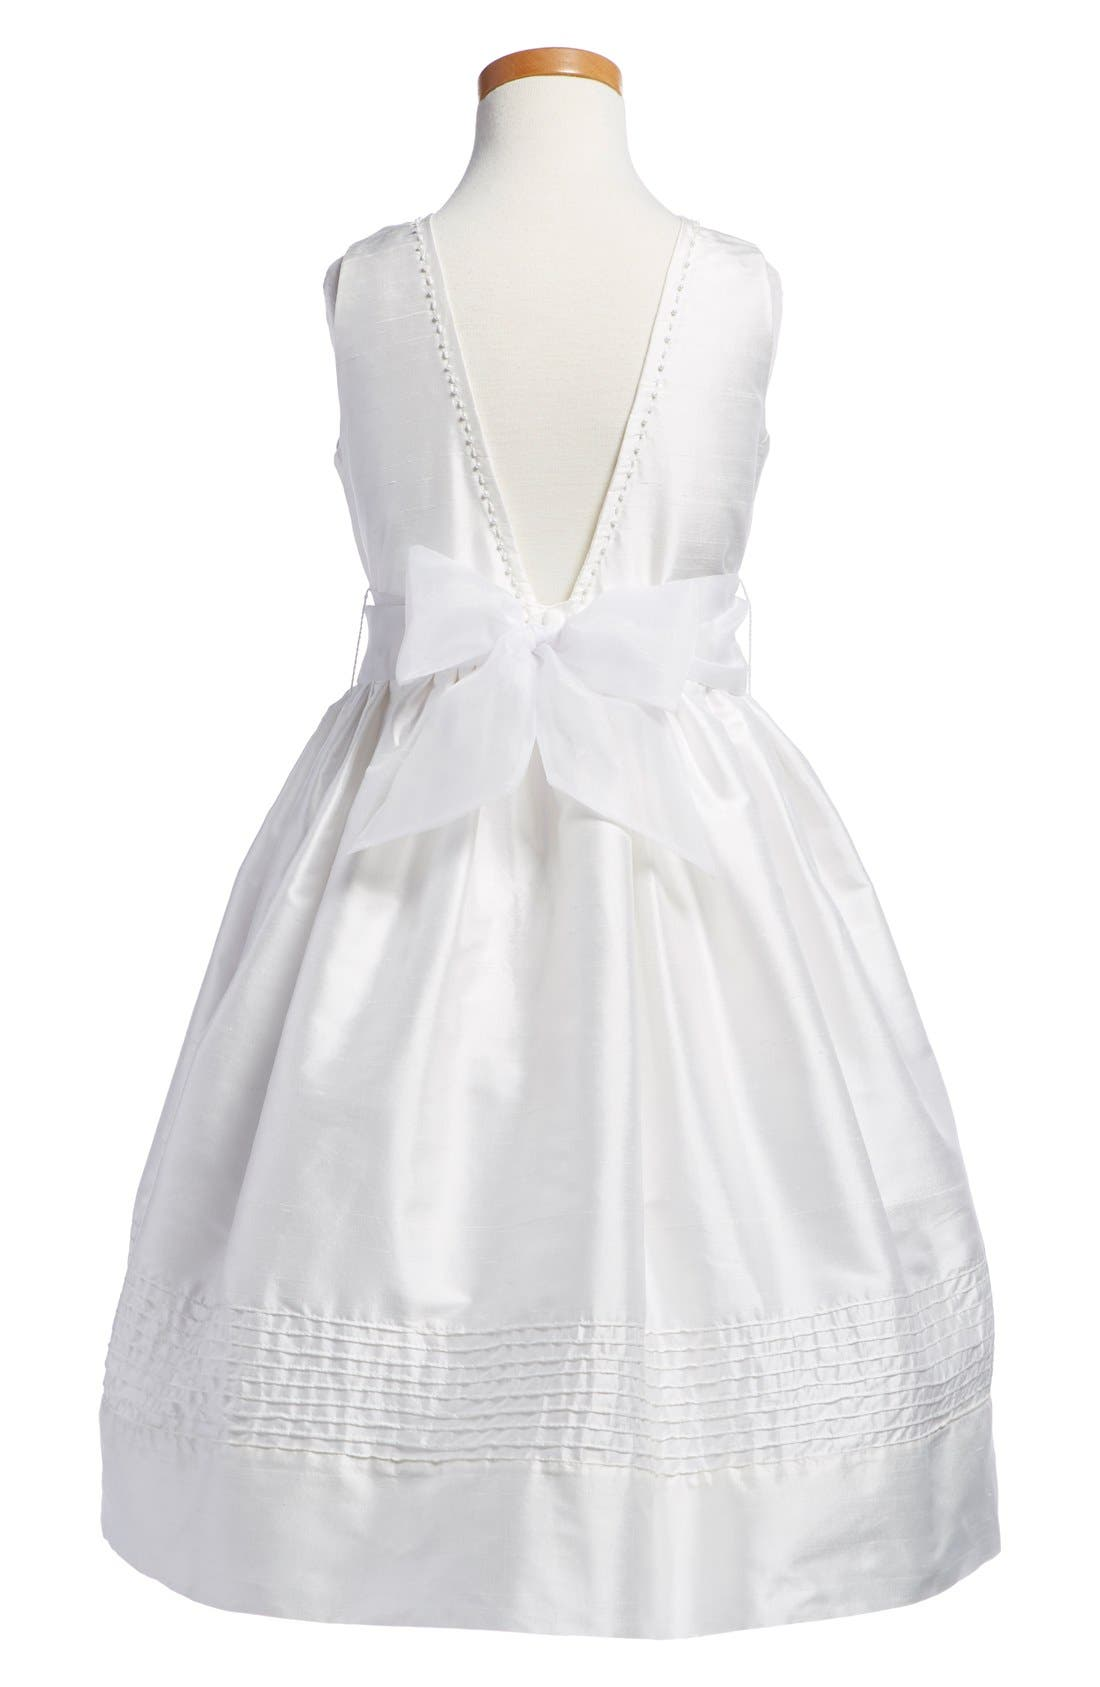 Alternate Image 2  - Isabel Garreton 'Melody' Sleeveless Dress (Little Girls & Big Girls)